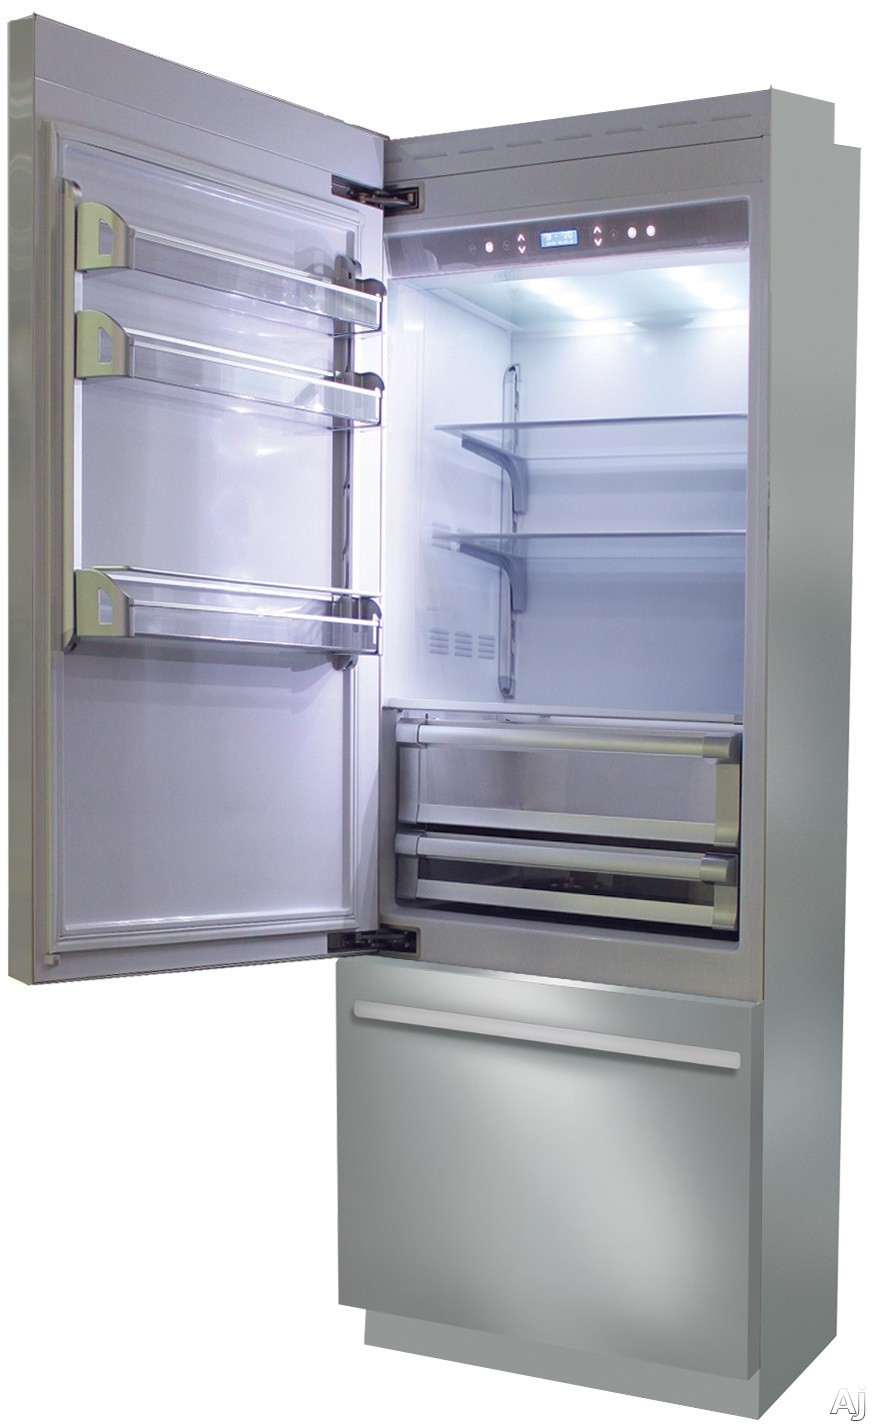 Fhiaba Brilliance Series BKI36BILS 36 Inch Built-In Bottom Freezer Refrigerator with TriMode Drawer, Frost-Free Operation, Soft Closing System, LED Lighting, Bottle Cooler and Ice Maker: Left Hinge